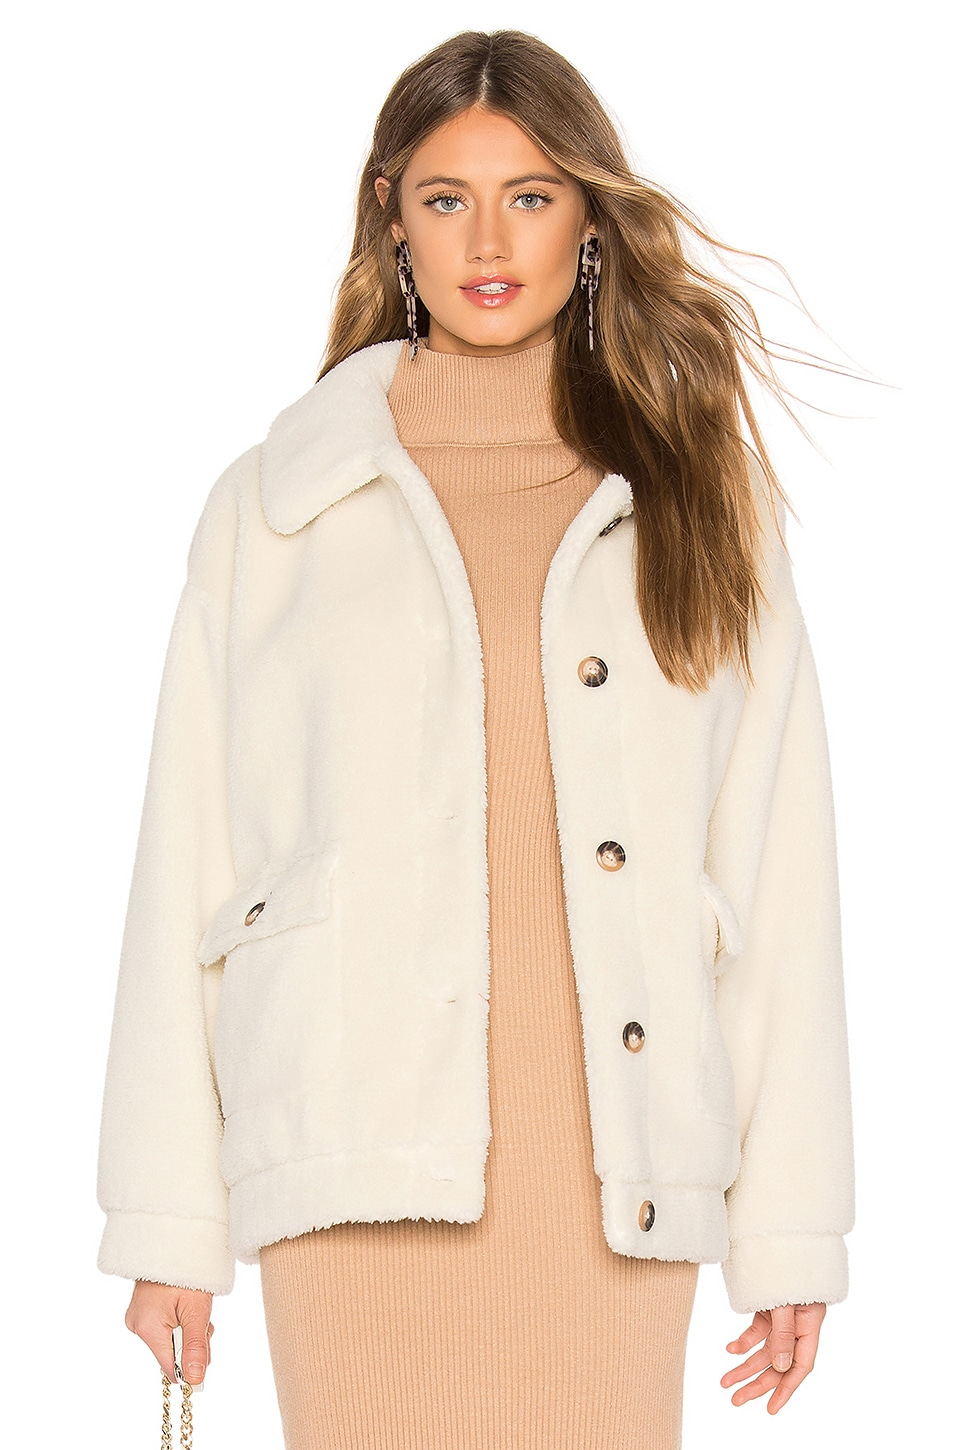 MAJORELLE Crawford Coat in Ivory